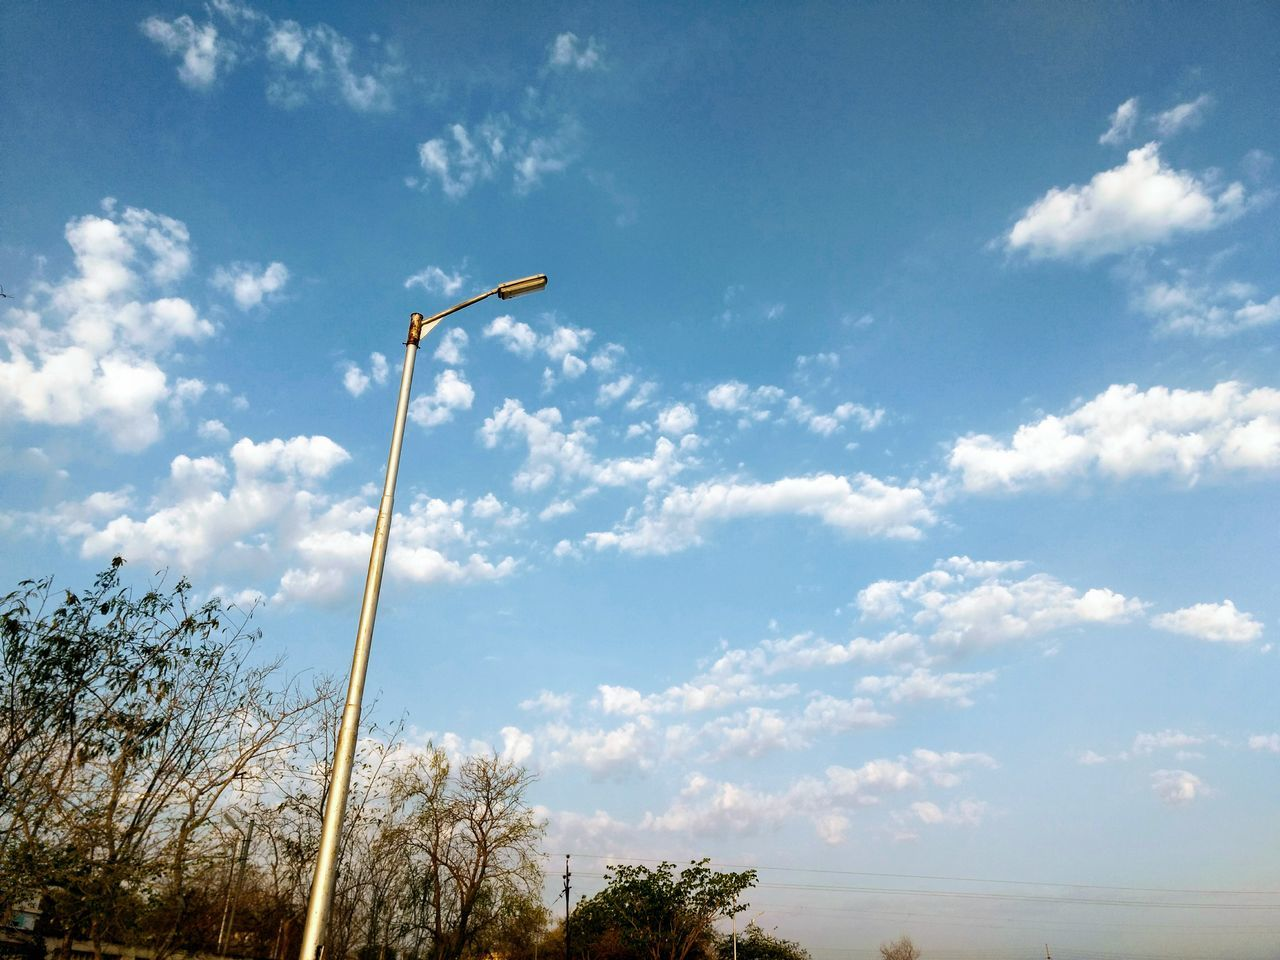 sky, cloud - sky, low angle view, plant, nature, day, tree, no people, lighting equipment, street light, outdoors, street, scenics - nature, beauty in nature, tranquil scene, tranquility, flying, sunlight, environment, land